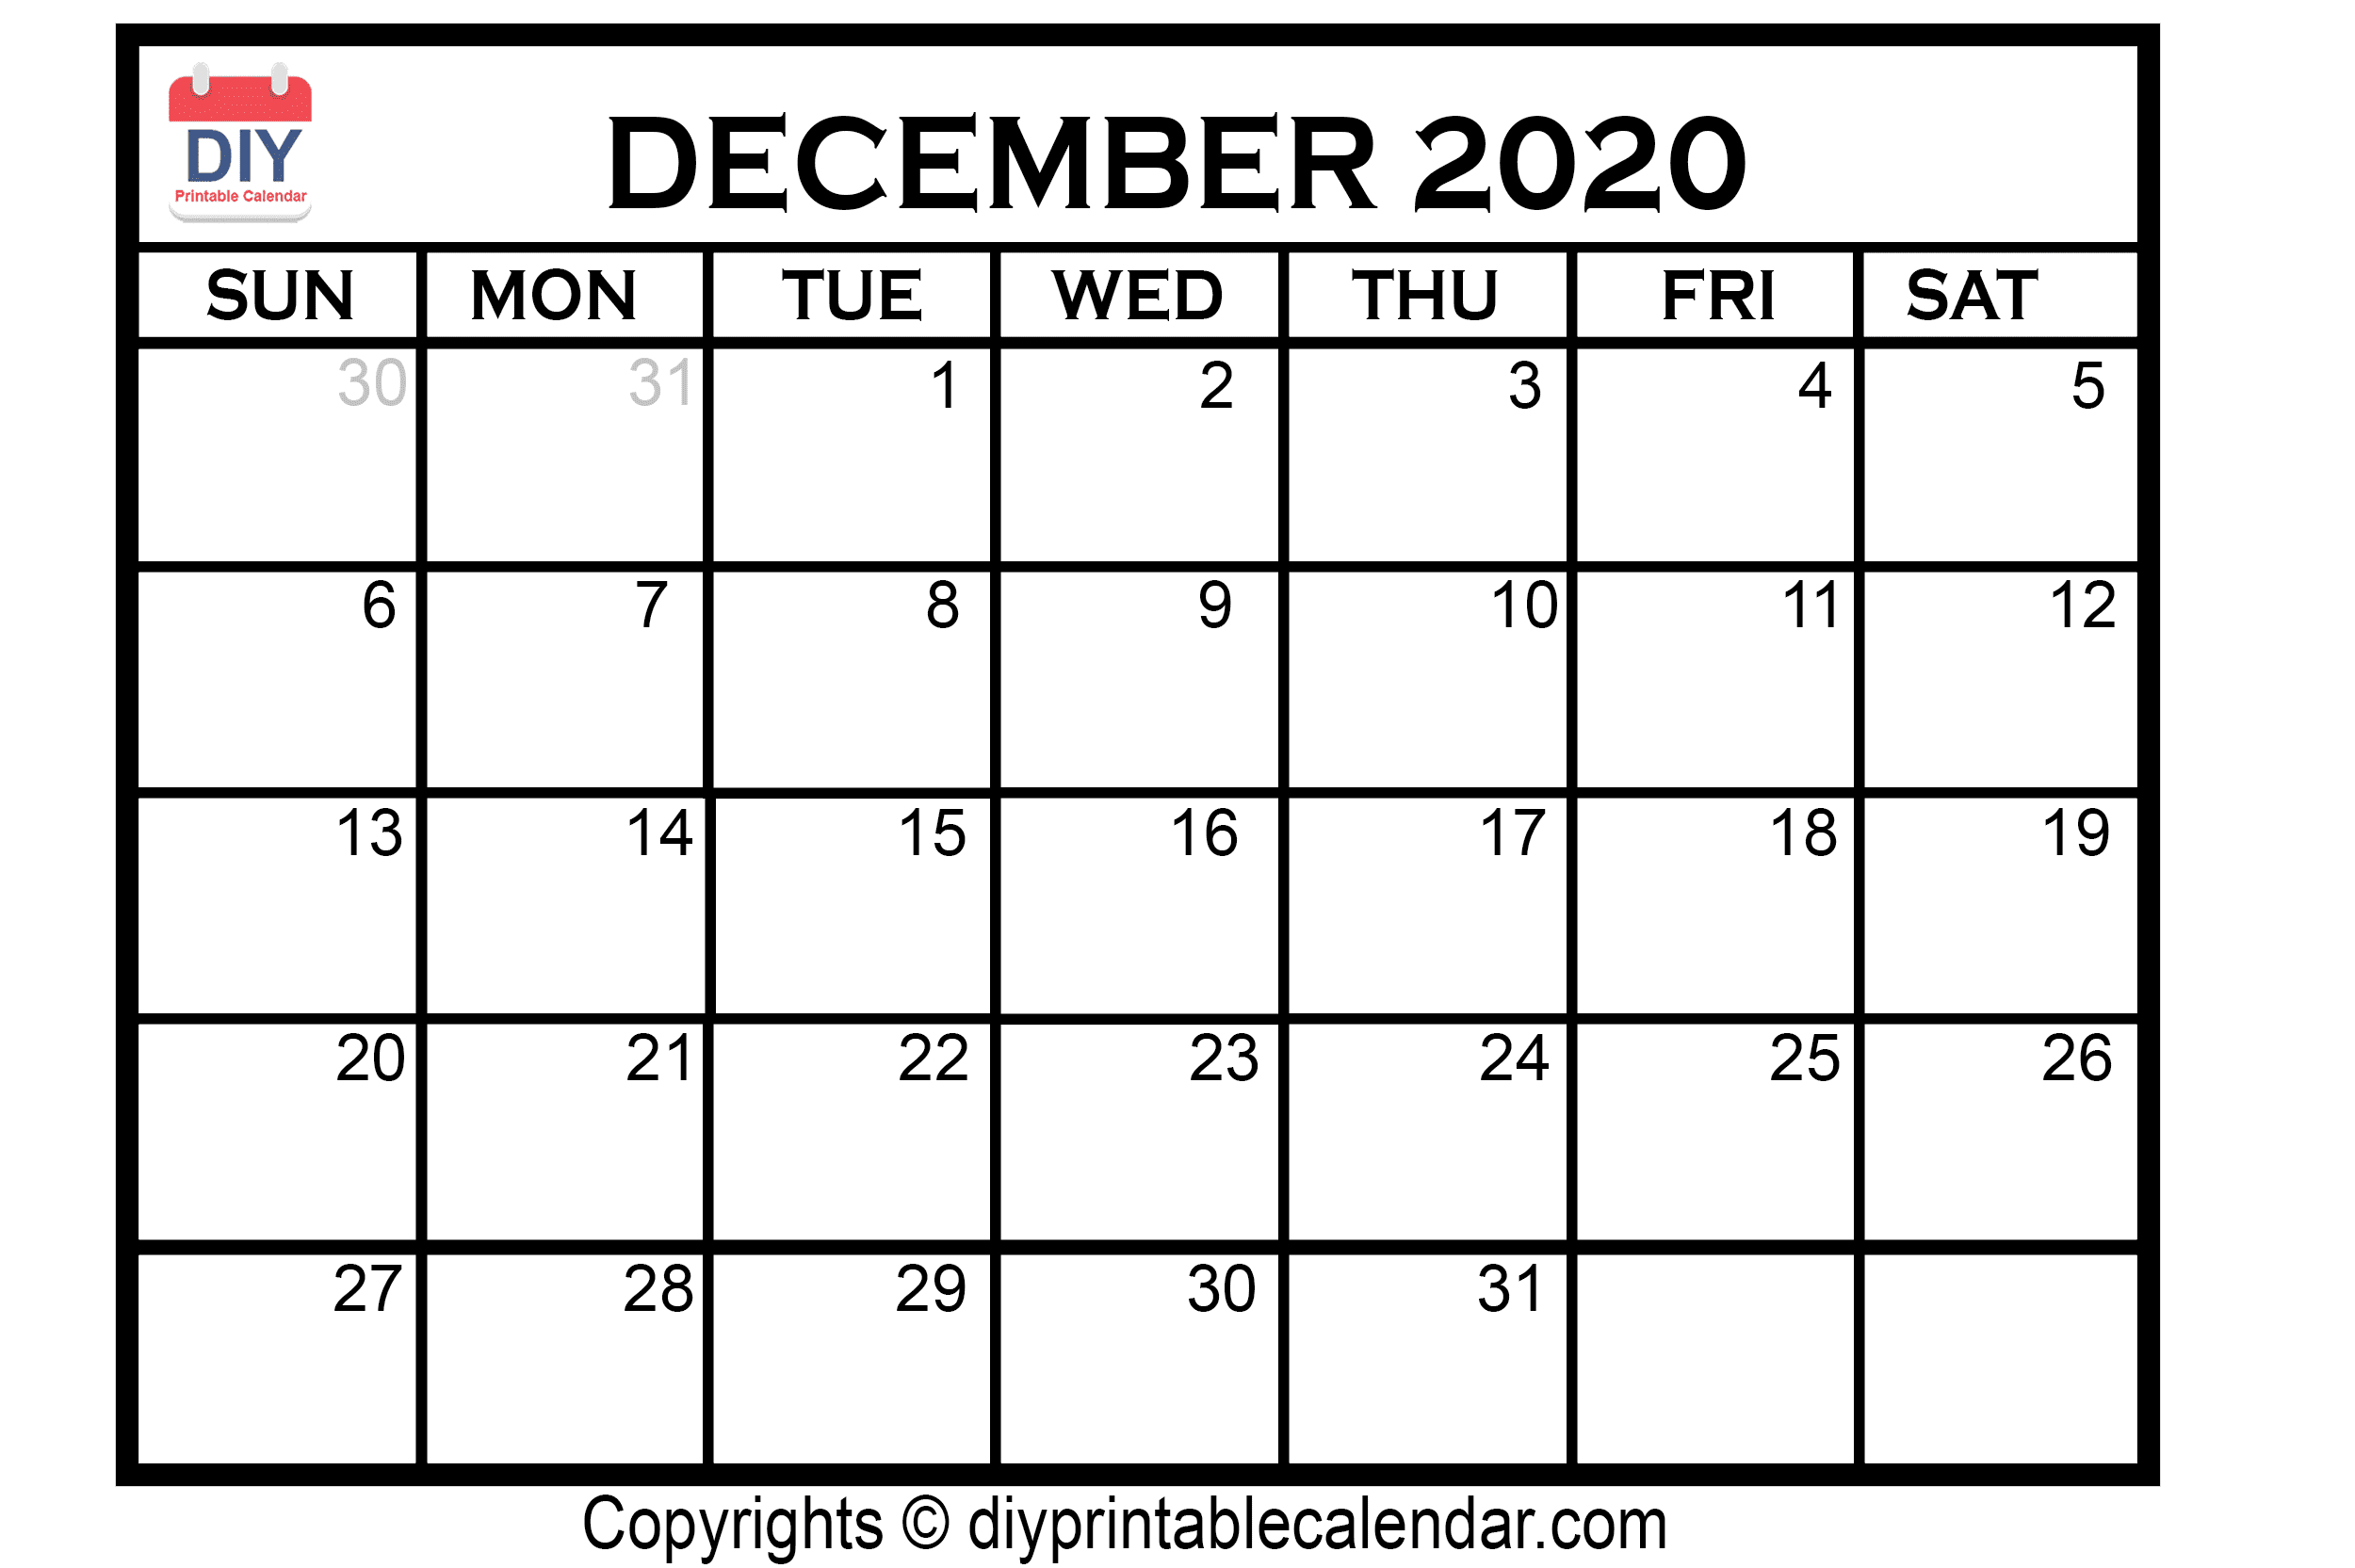 December 2020 Printable Calendar Template within Calendar 2020 December